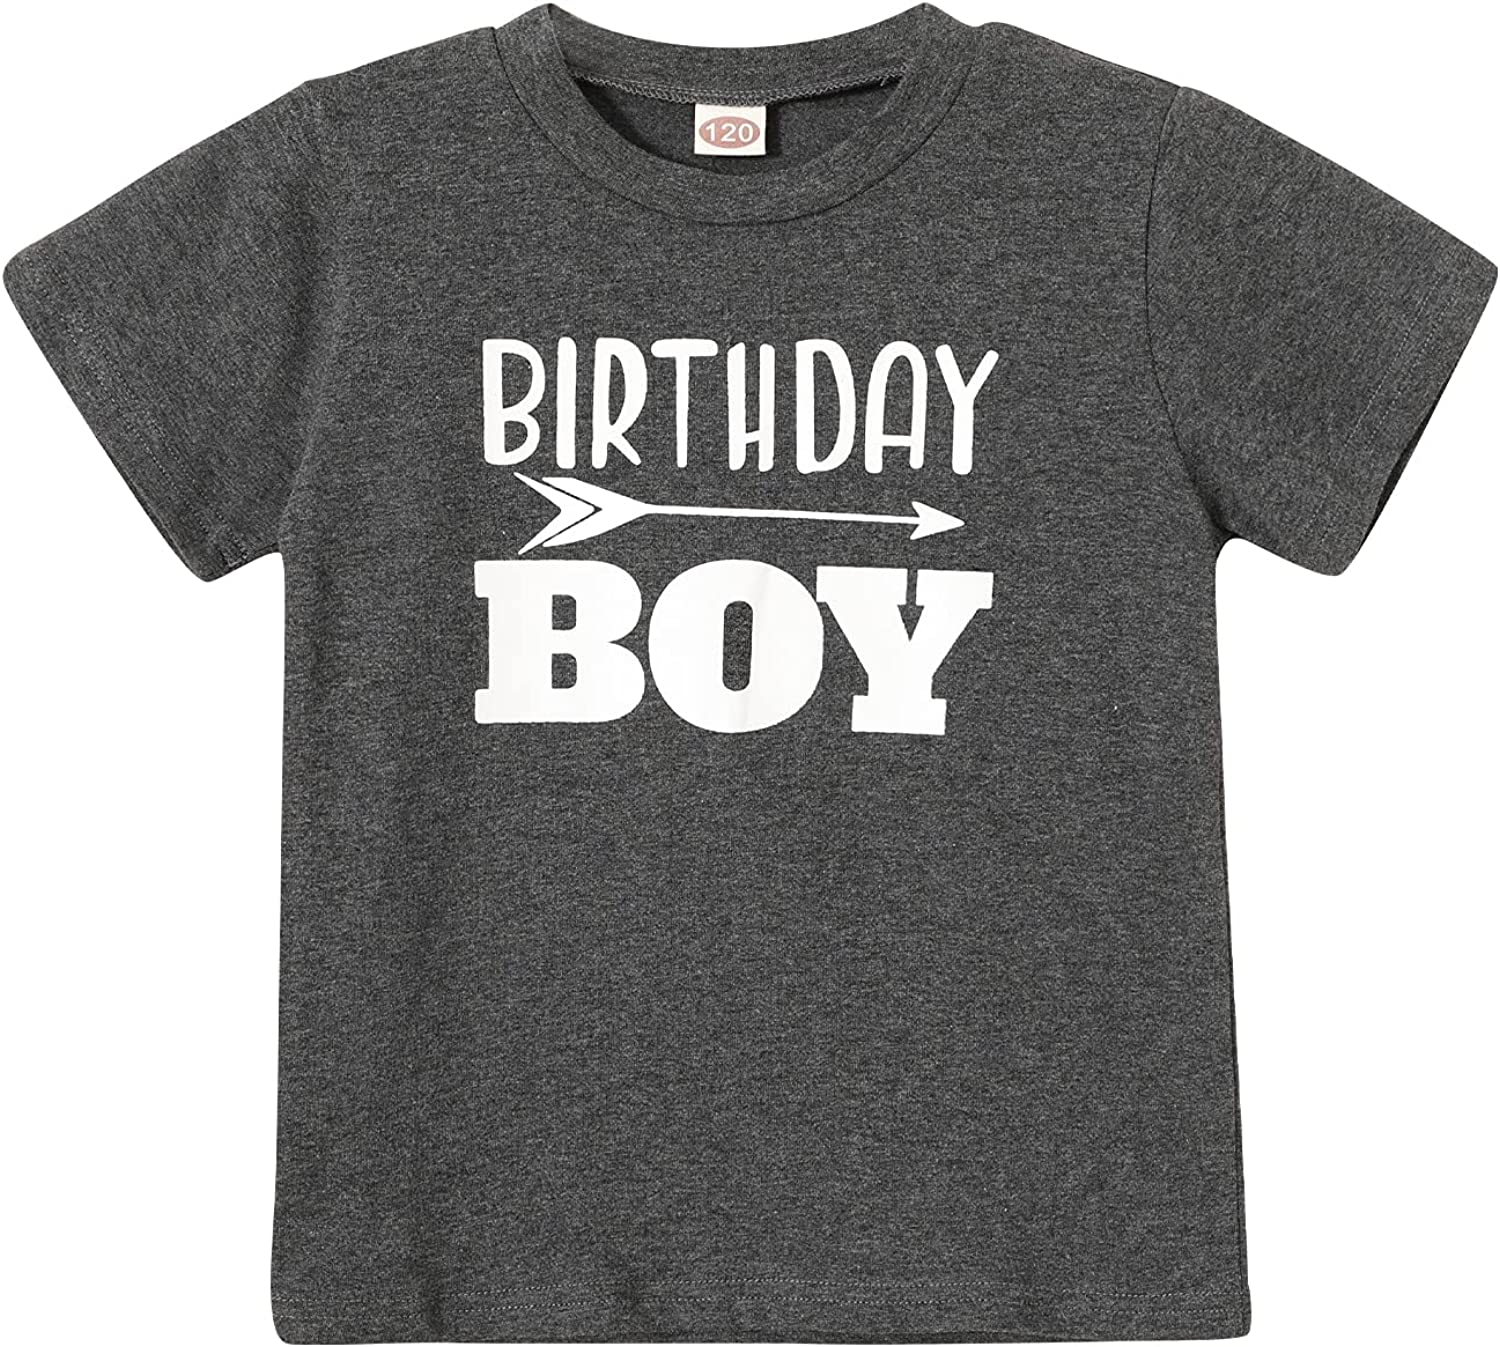 Birthday boy Shirt Toddler Boys Charcoal Black Outfit First 2t 3t 4t 5 Year Old